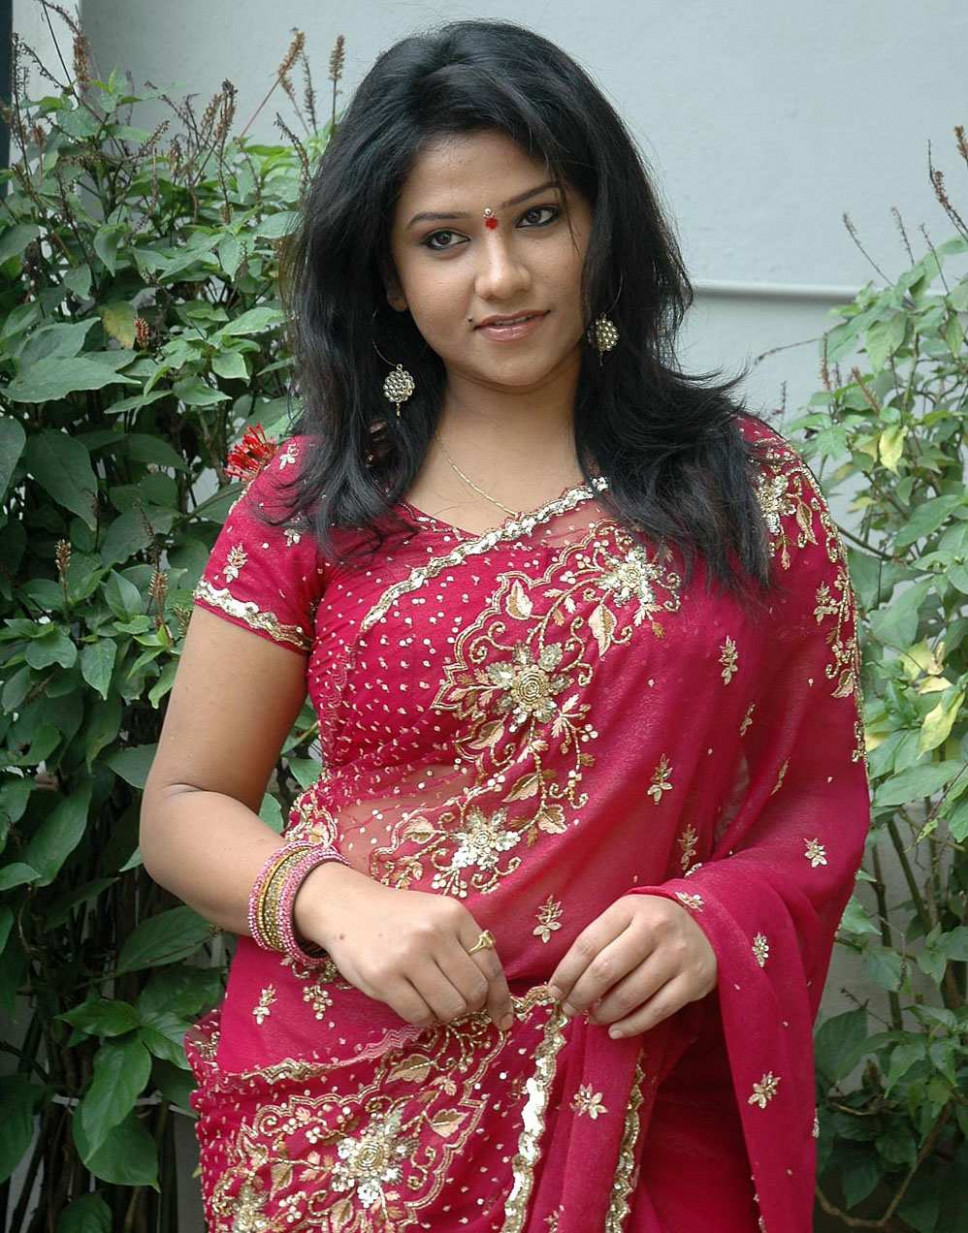 Hot Actress Photos Free HD: Tollywood Actress In Saree